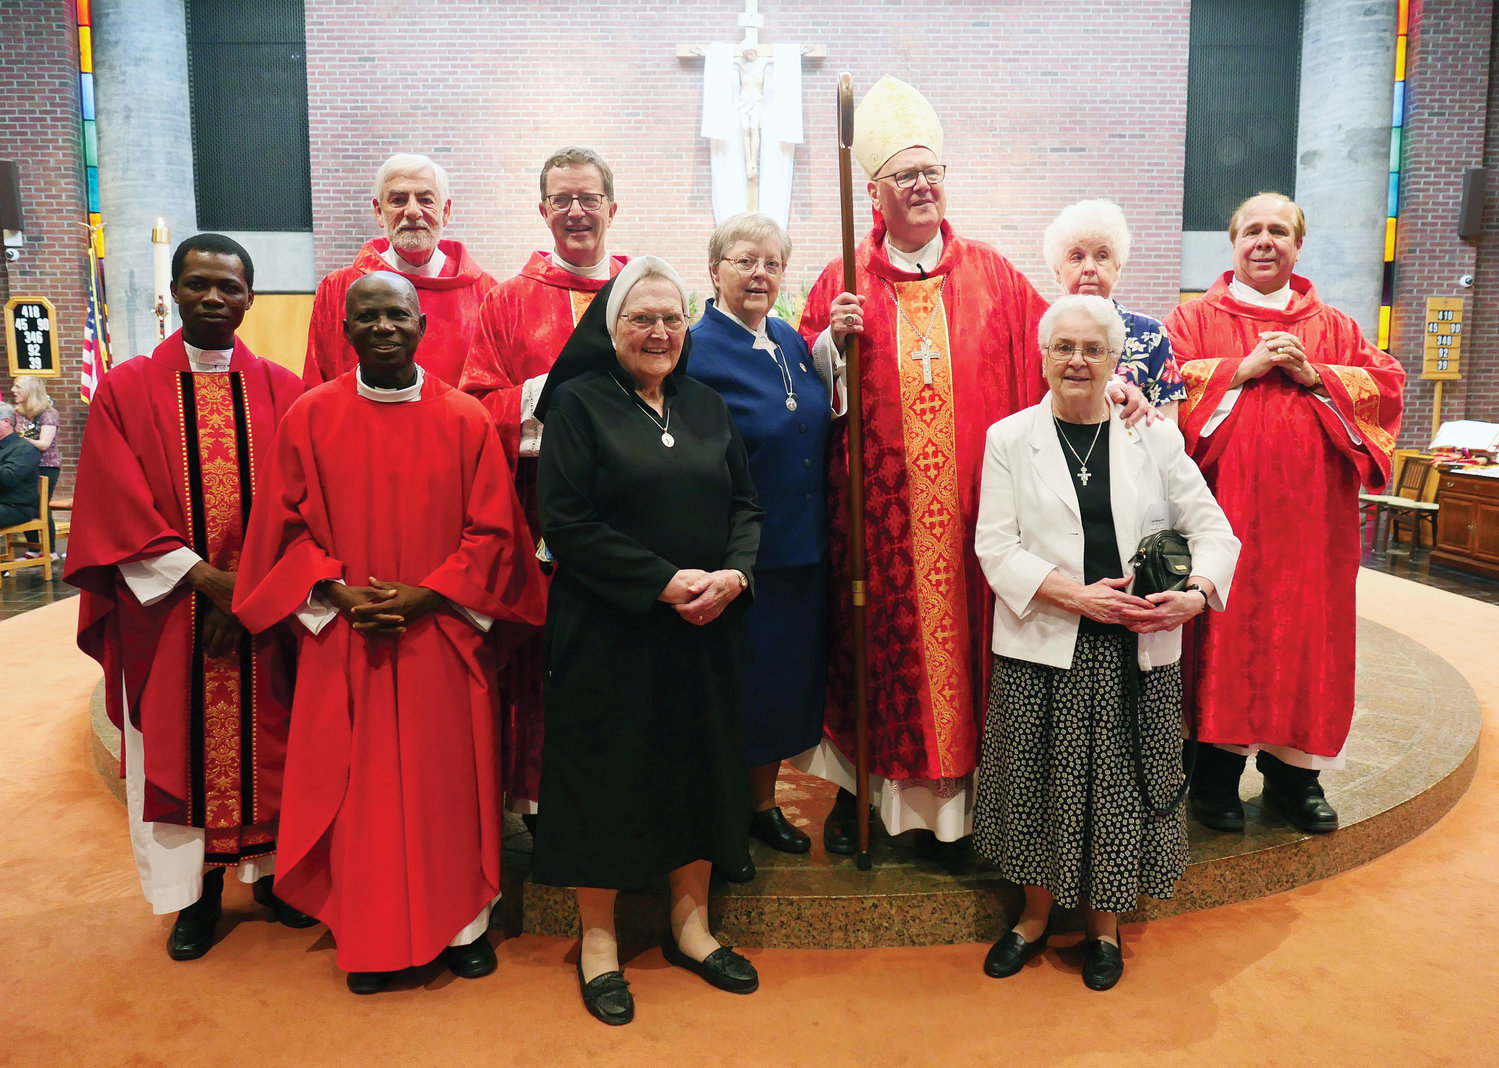 Cardinal Dolan joins, from left, Father John Kwaku Sah, parochial vicar; Father Andrew Amankwaa; Deacon Anthony Ferraiuolo; Father Rees Doughty, pastor; Sister Mary McCaffrey, O.S.F.; Sister Helen Hofmann, O.S.F.; Sister Barbara Ann Sansone, O.S.F.; Sister Rose Jerome Kenlon, O.S.F.; and Deacon Lenny Farmer. The Orange County parish is awaiting approval for a name change to St. Marianne Cope.